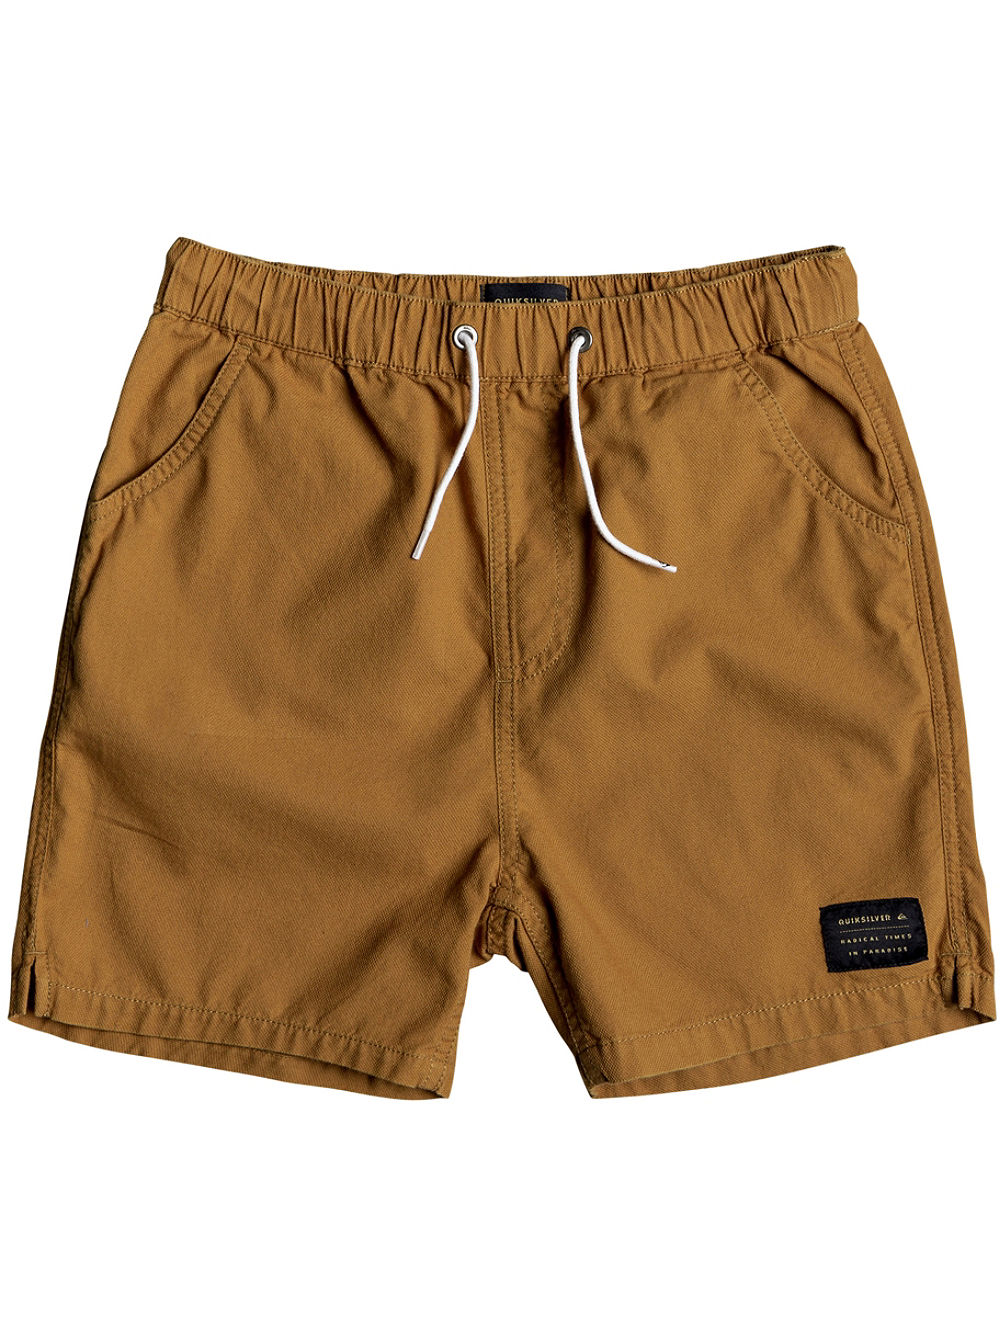 Wapu Street Shorts Boys